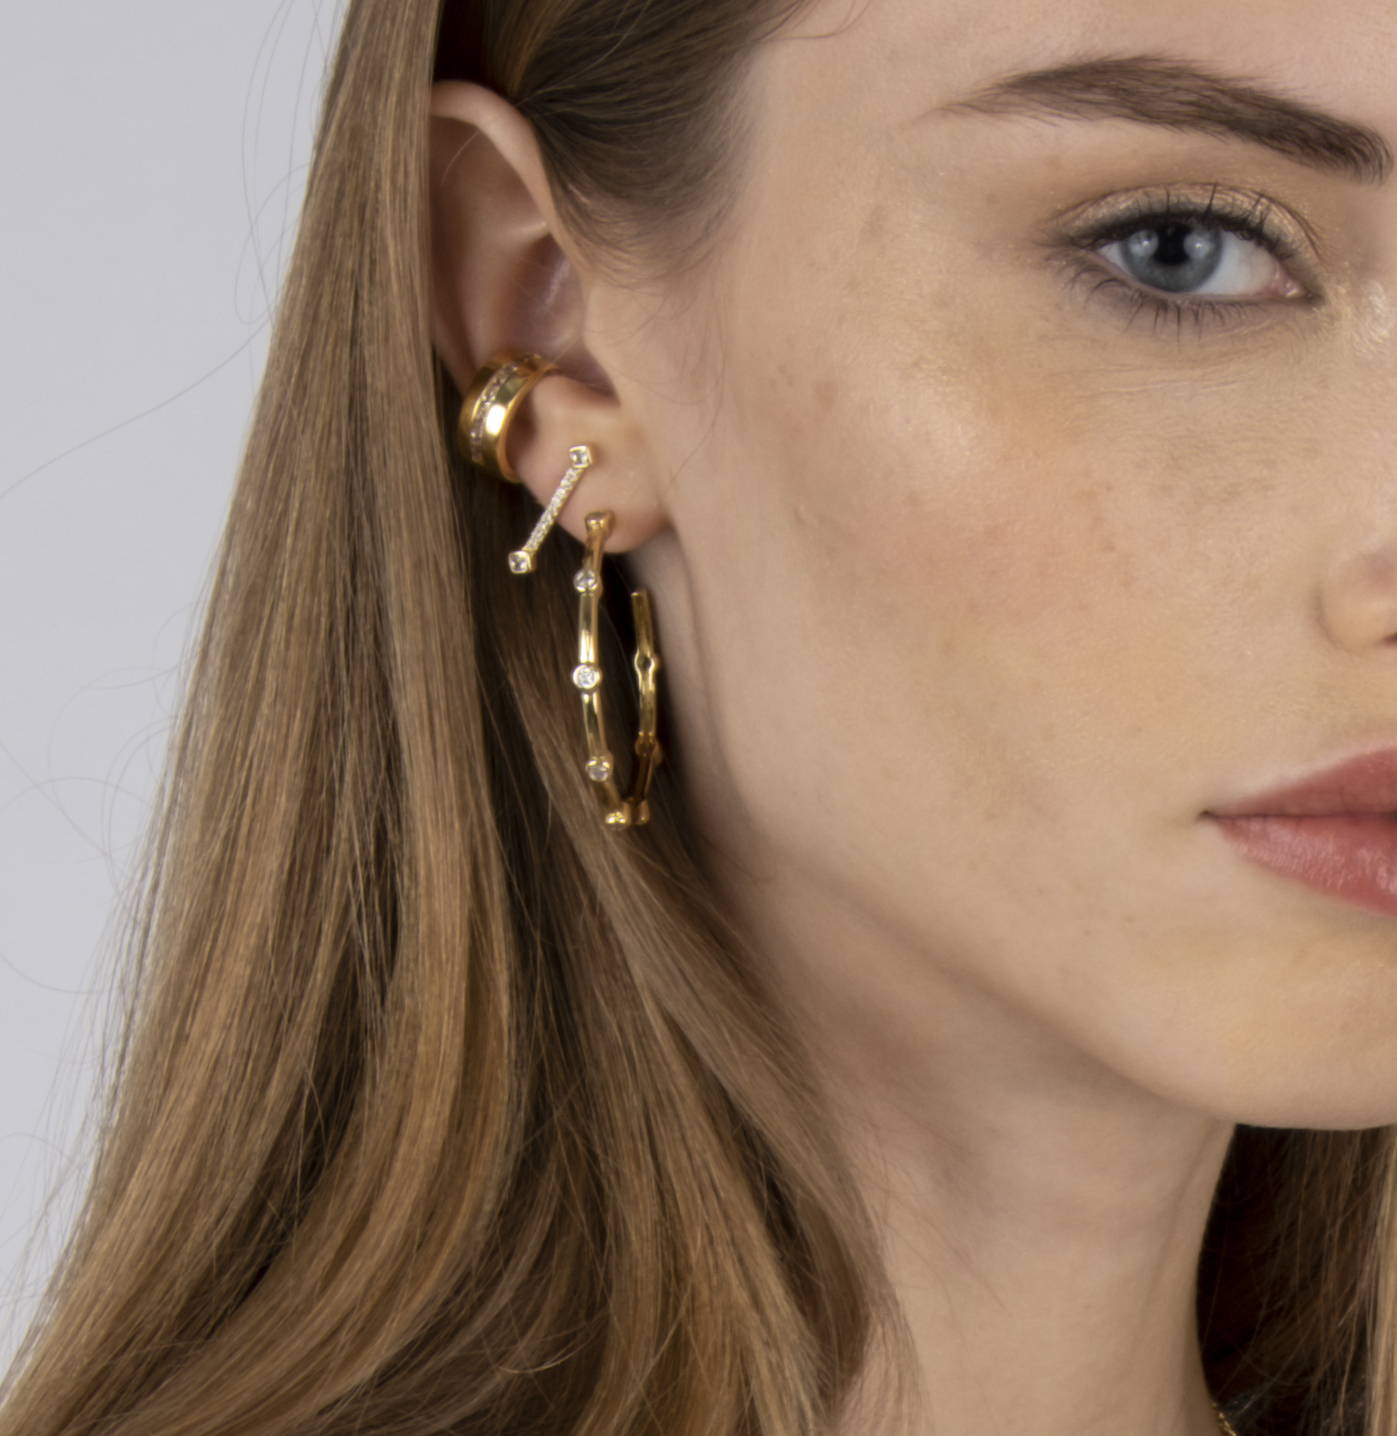 Ear Stacking Ideas